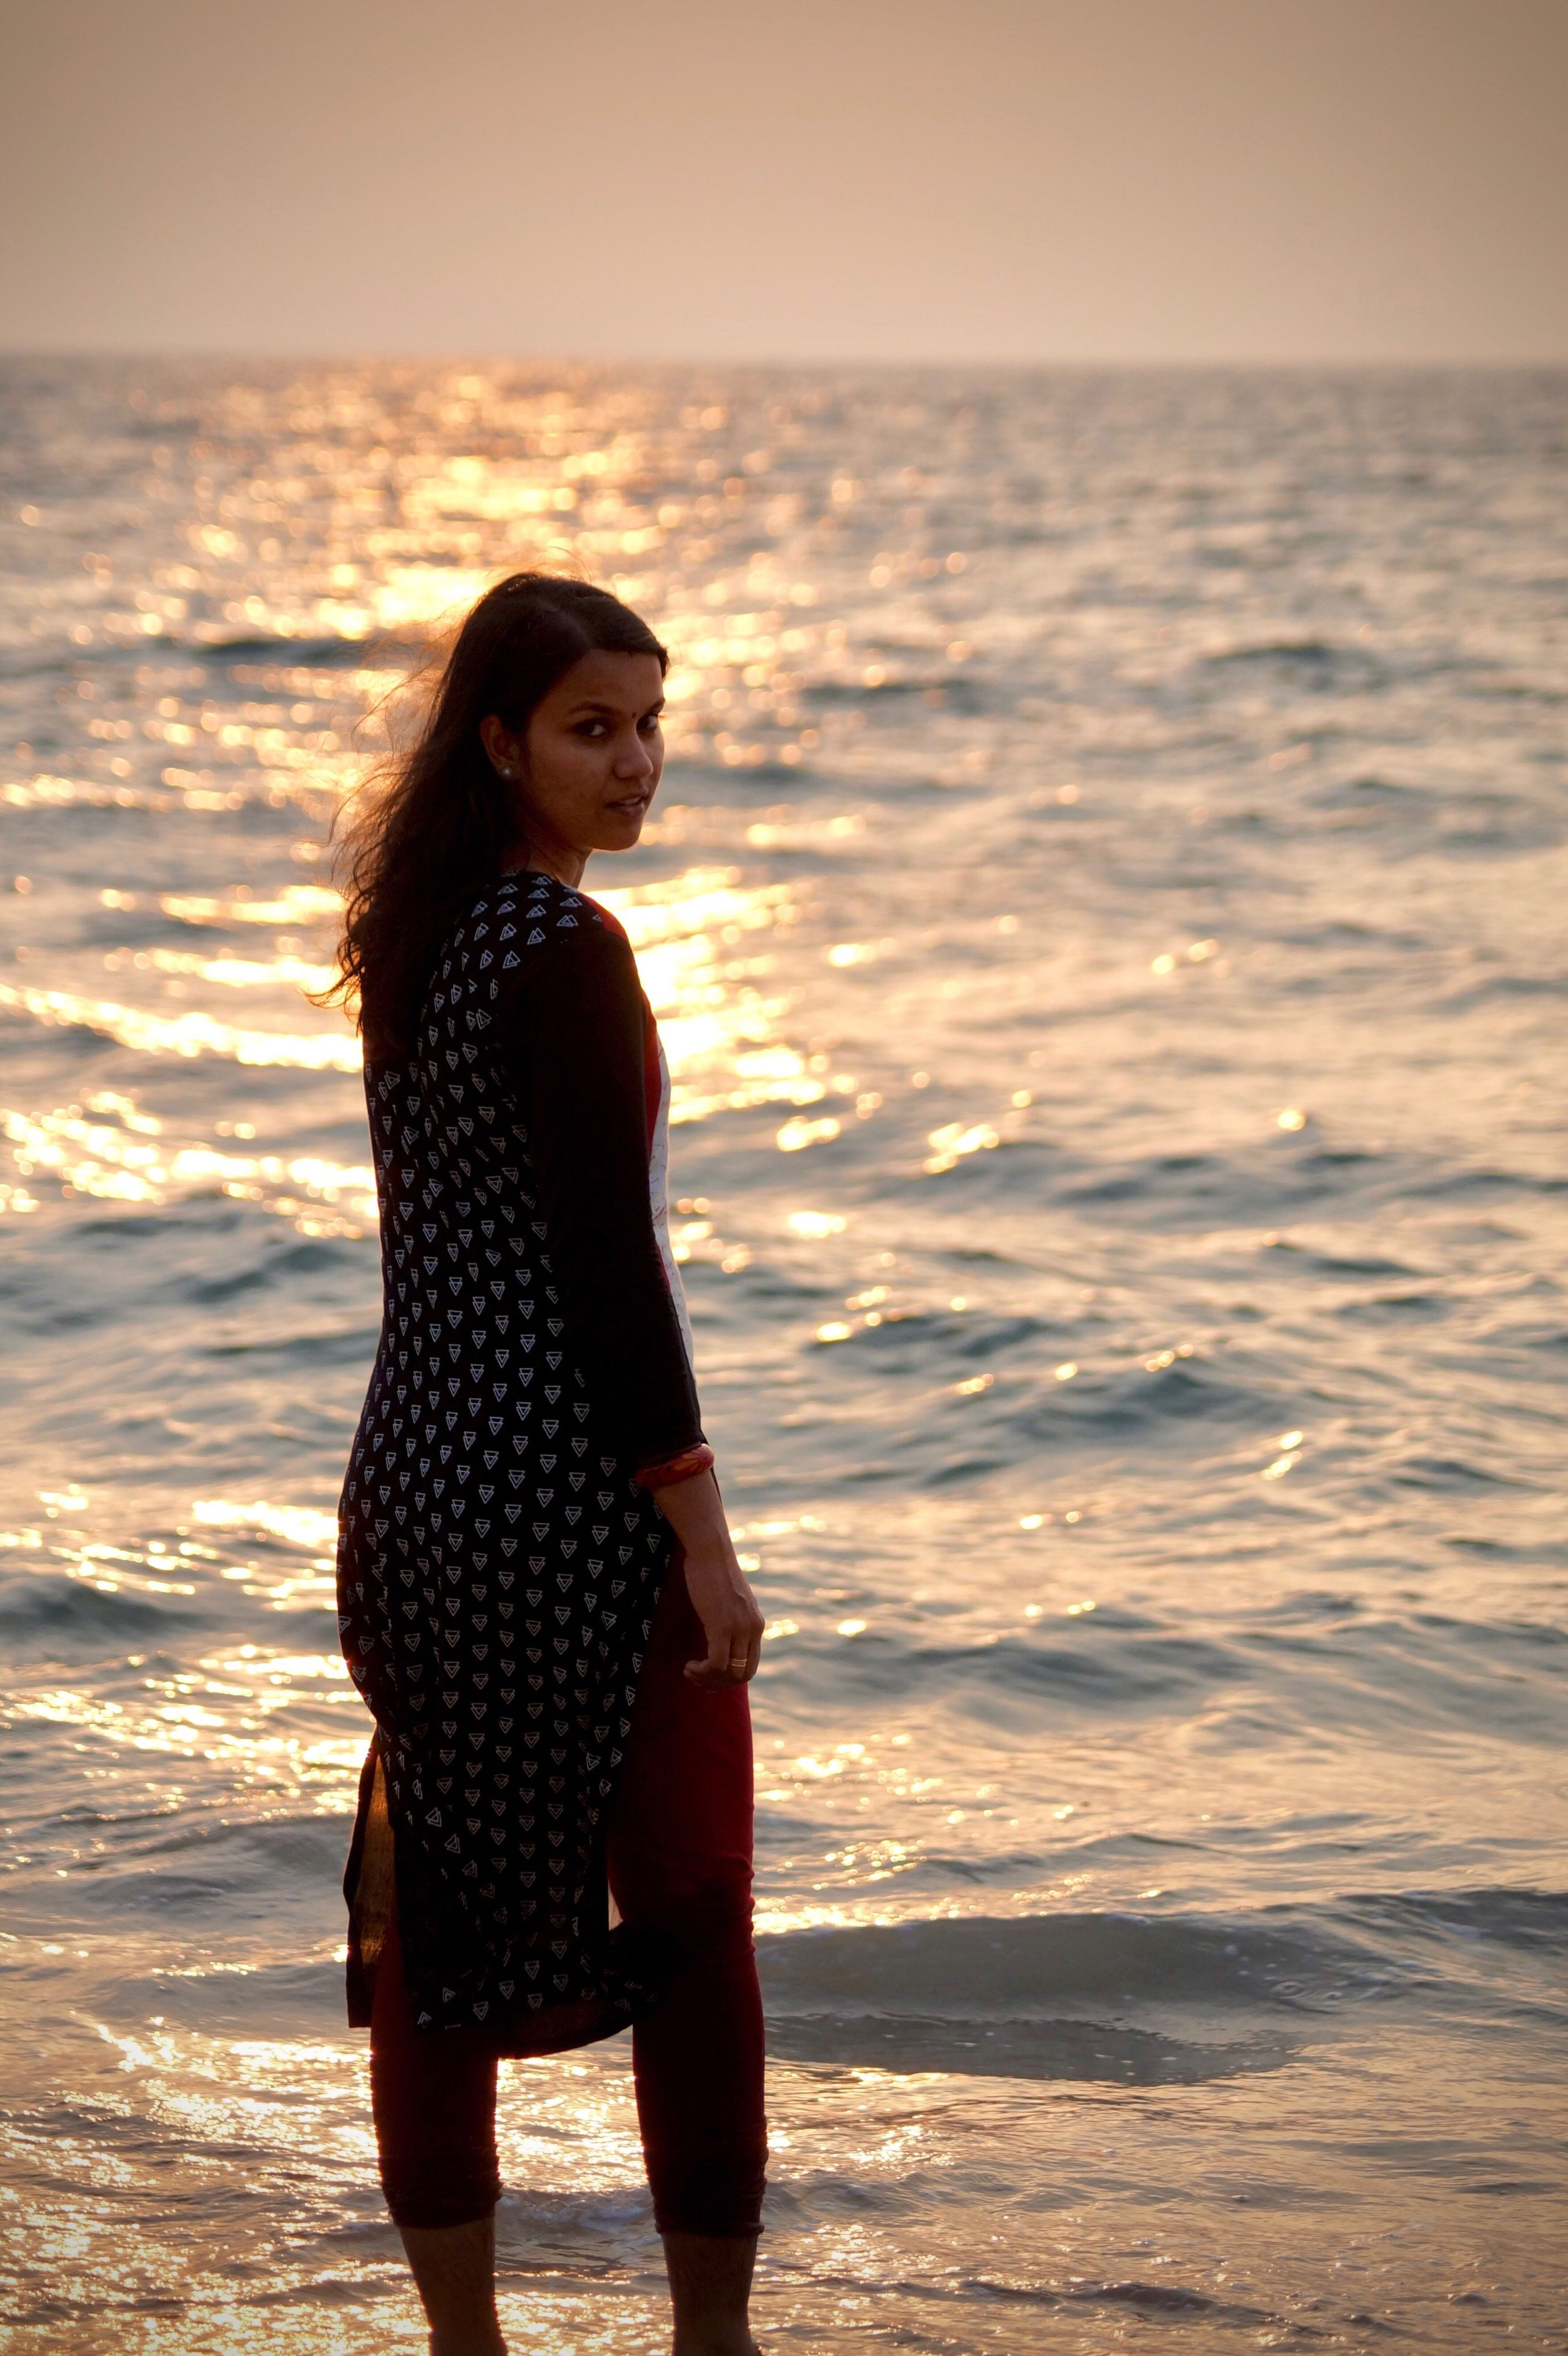 sea, sunset, beach, standing, one woman only, only women, one person, portrait, adults only, adult, young adult, nature, beautiful people, beauty in nature, vacations, outdoors, beauty, sky, water, women, people, one young woman only, beautiful woman, wave, day